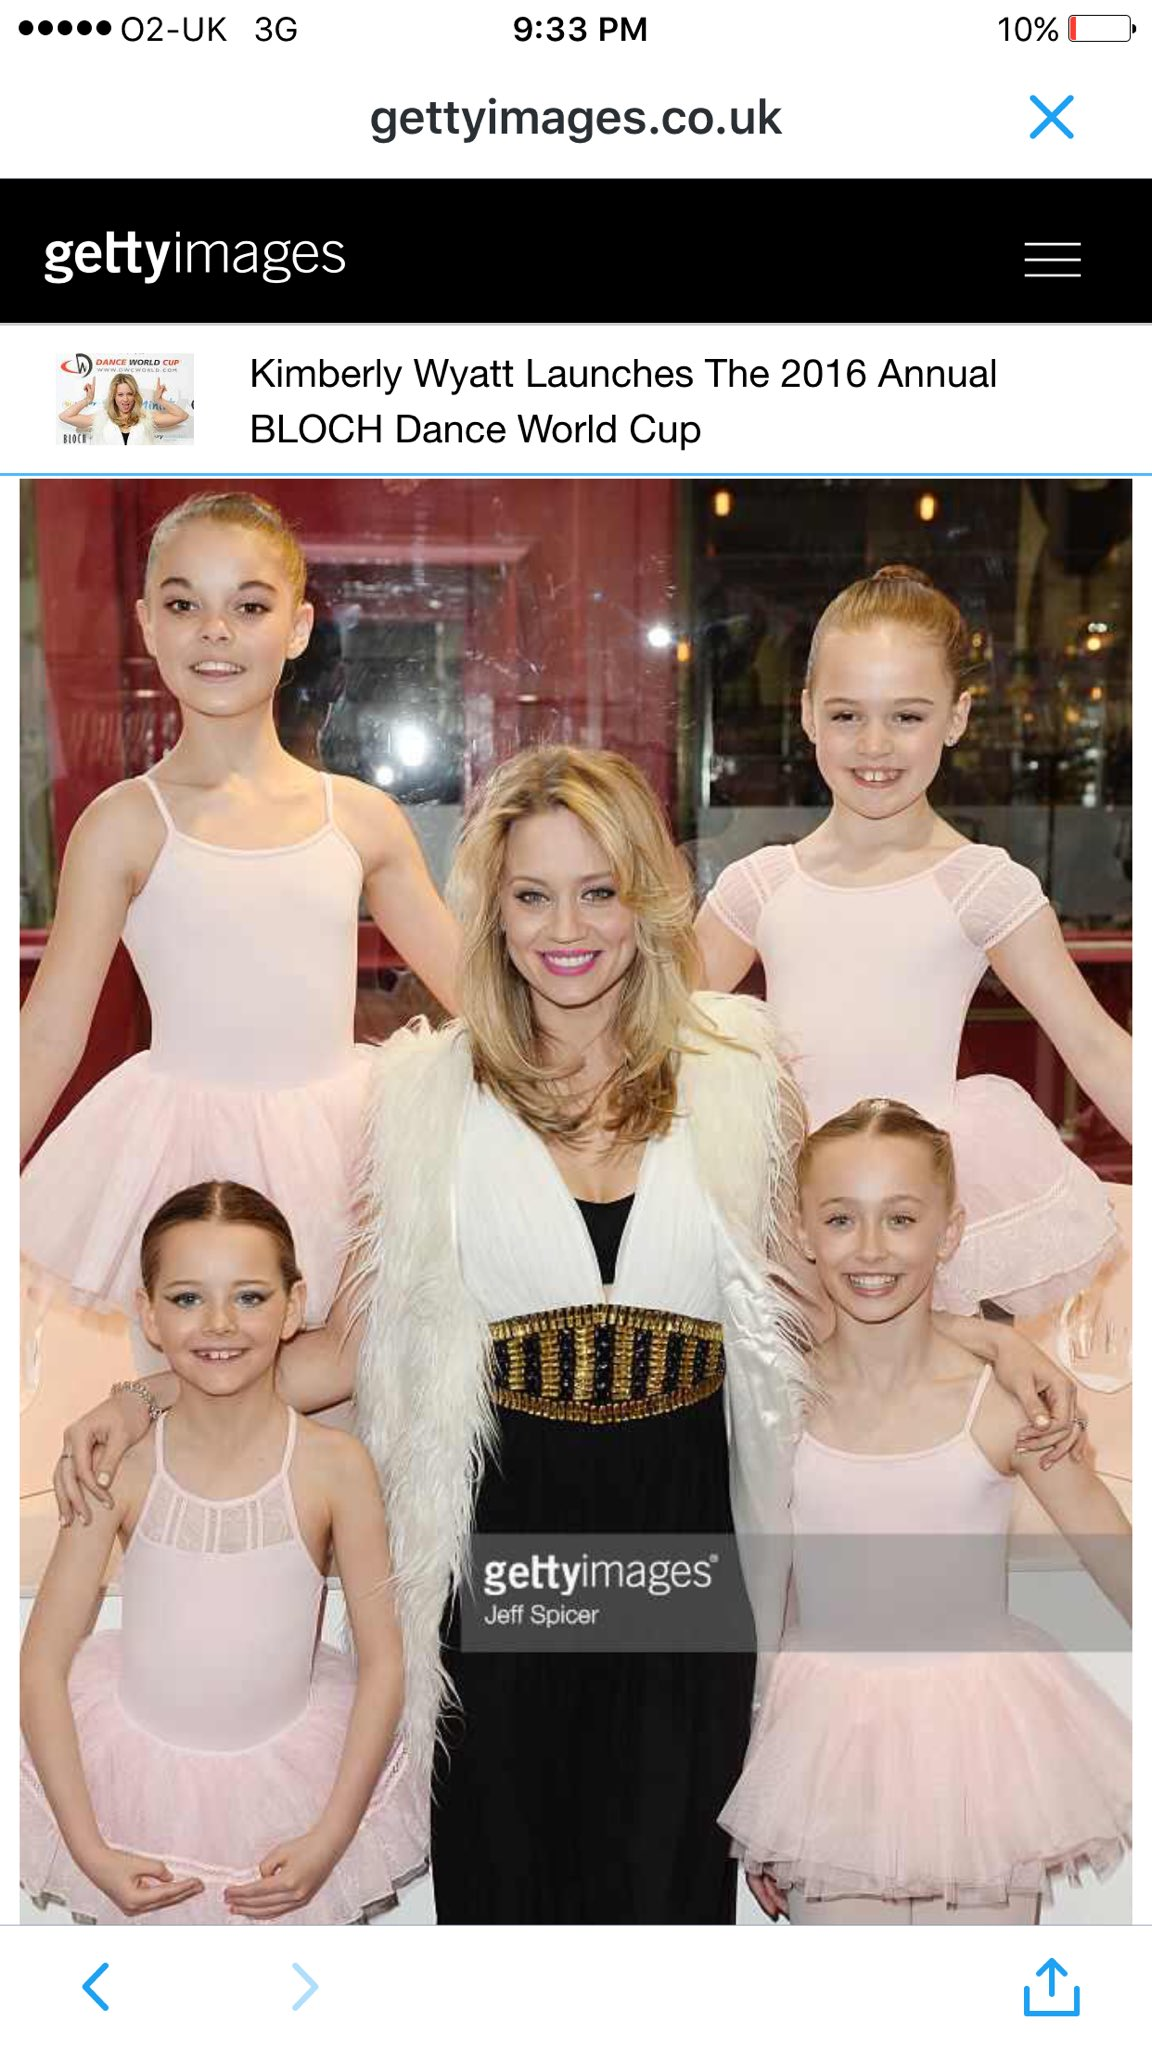 My four guardian angel ballerinas. My heart is filled with joy having had a @danceworldcup event @BLOCHEurope https://t.co/Qnnfm9iwes